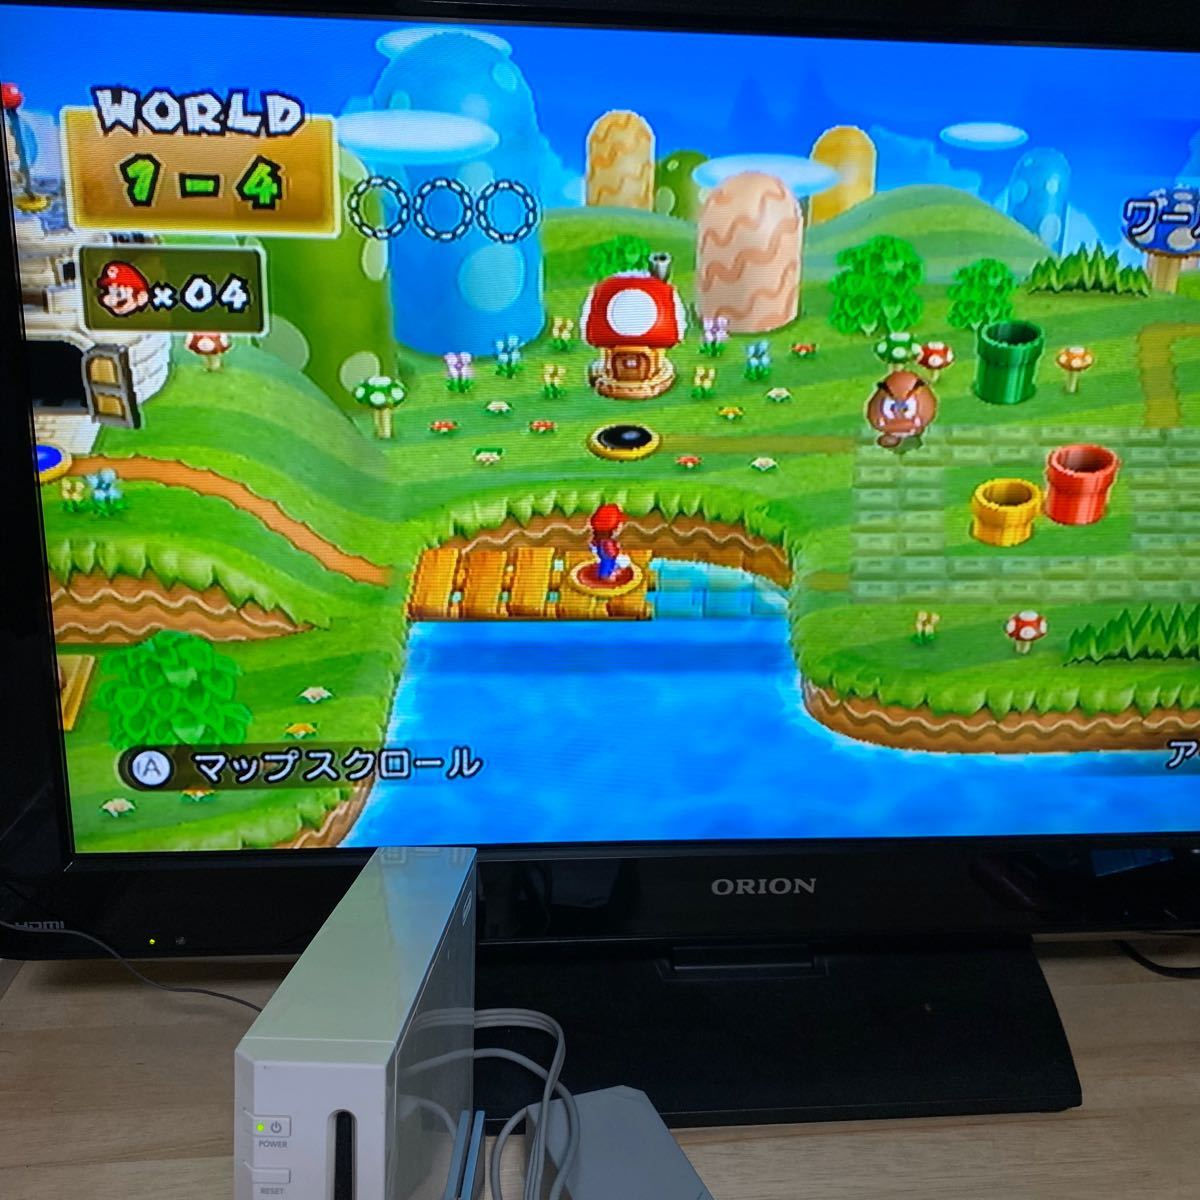 Wii 本体 コントローラー ソフト3本セット ウィー